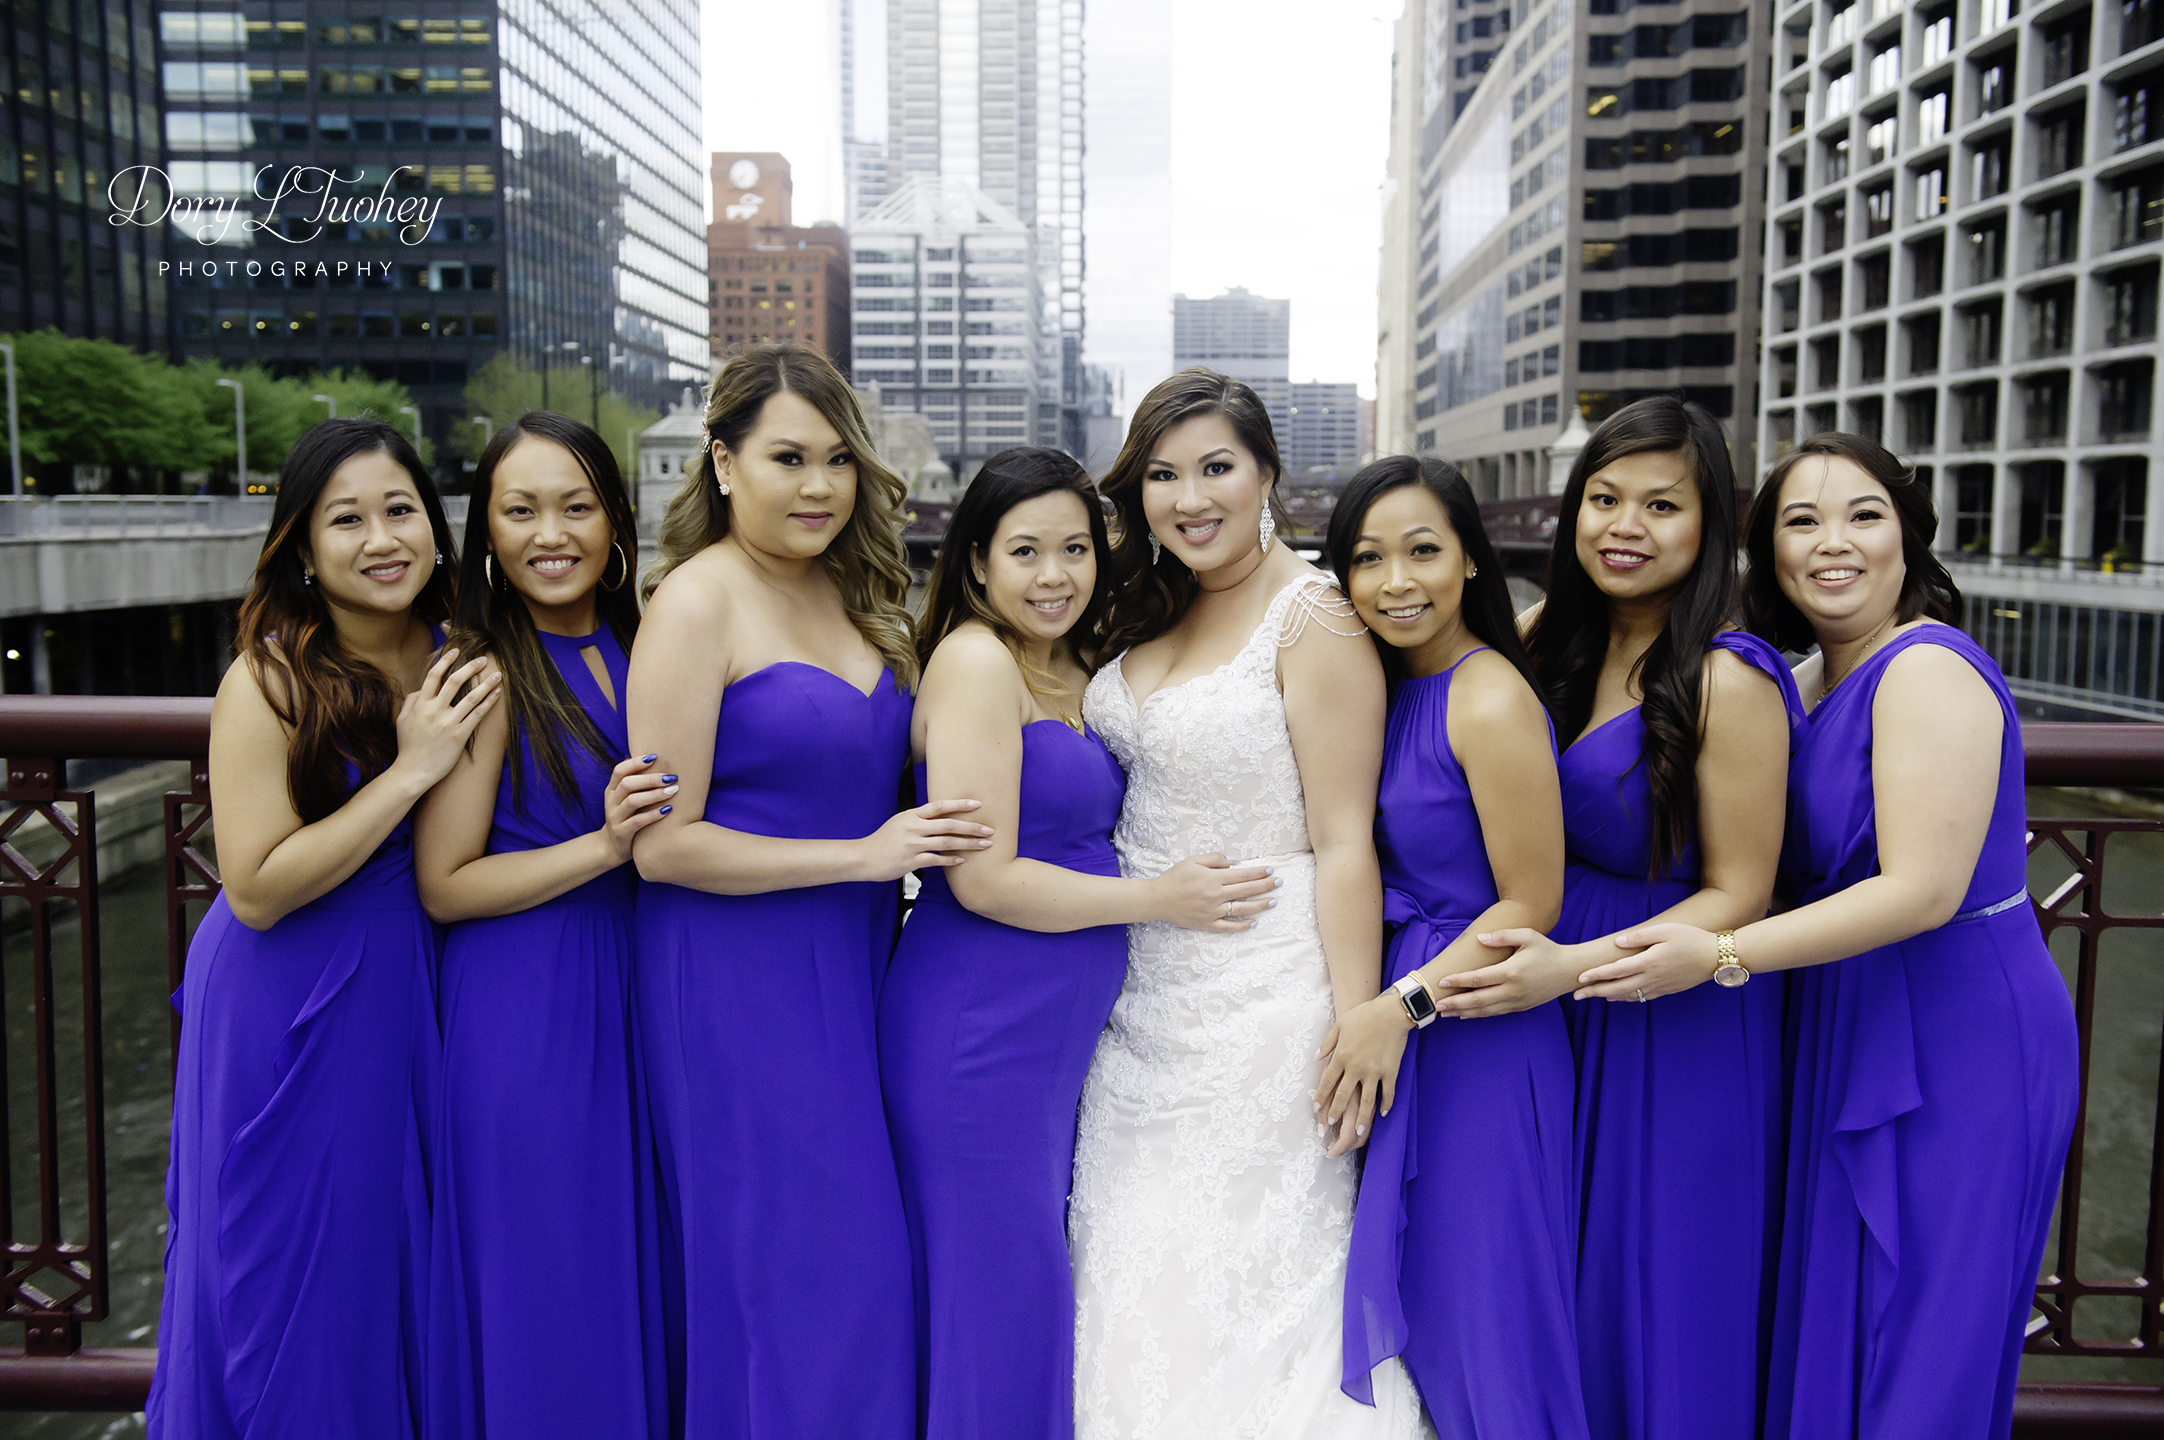 Chicago_wedding_photographer_bride_union_station_laos_thai_dory_08.jpg